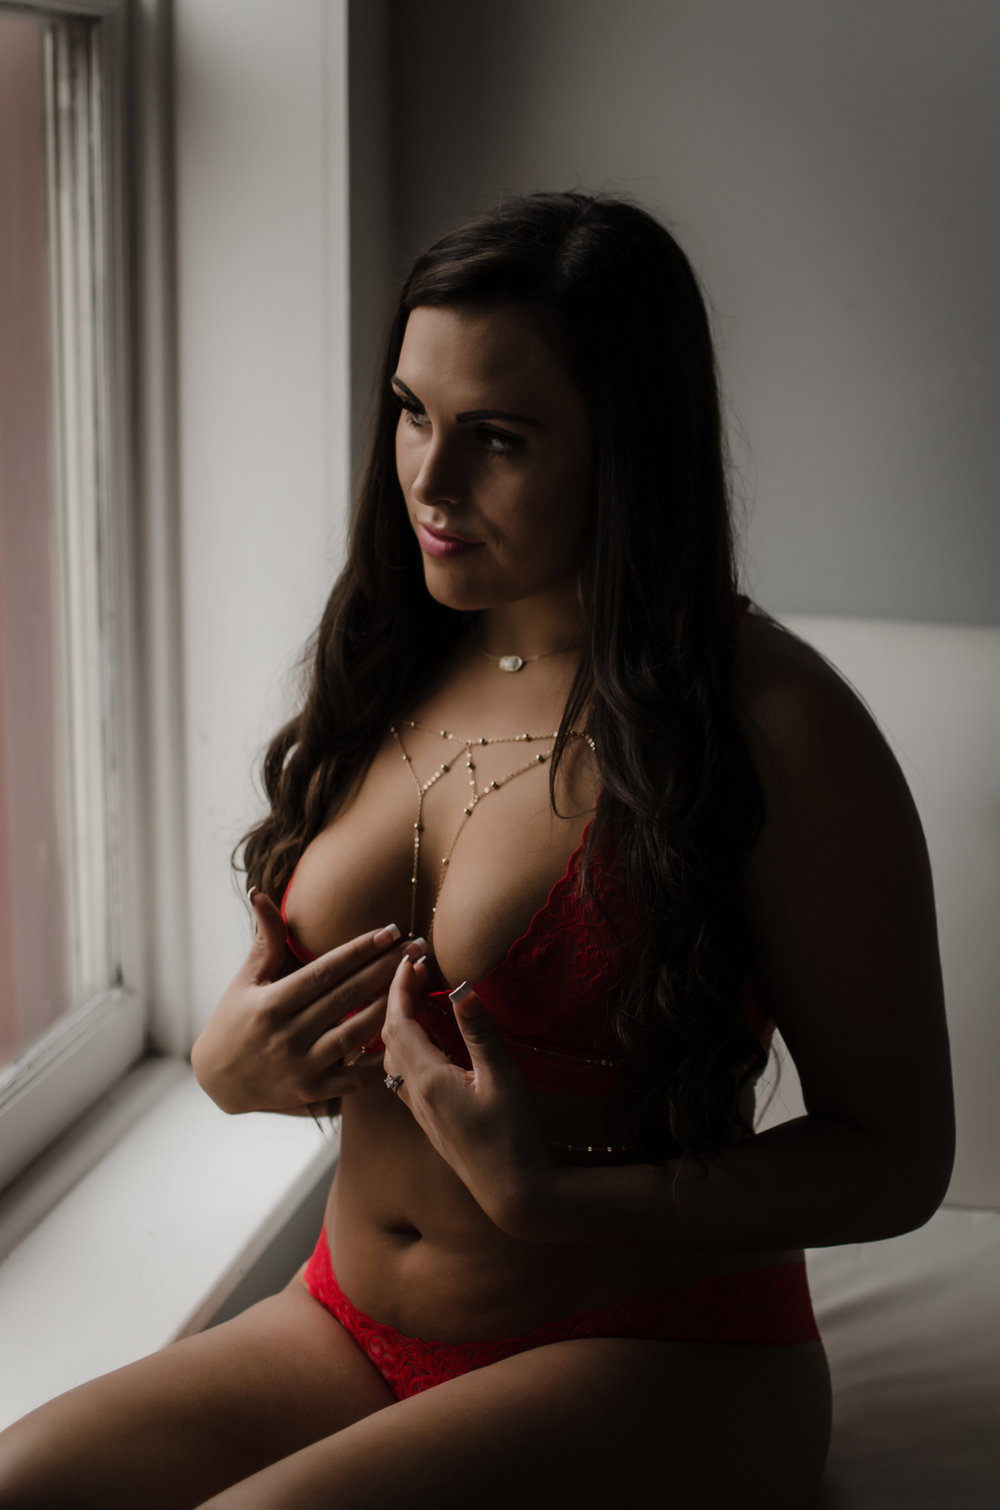 NC boudoir photography experience in belle vue wilmington venue with red lace bra and panties by Victoria Secret  and womens body chain photography by Amandamarie Gillen Photography Wilmington NC photographer sitting by window with natural light touching clevage pose